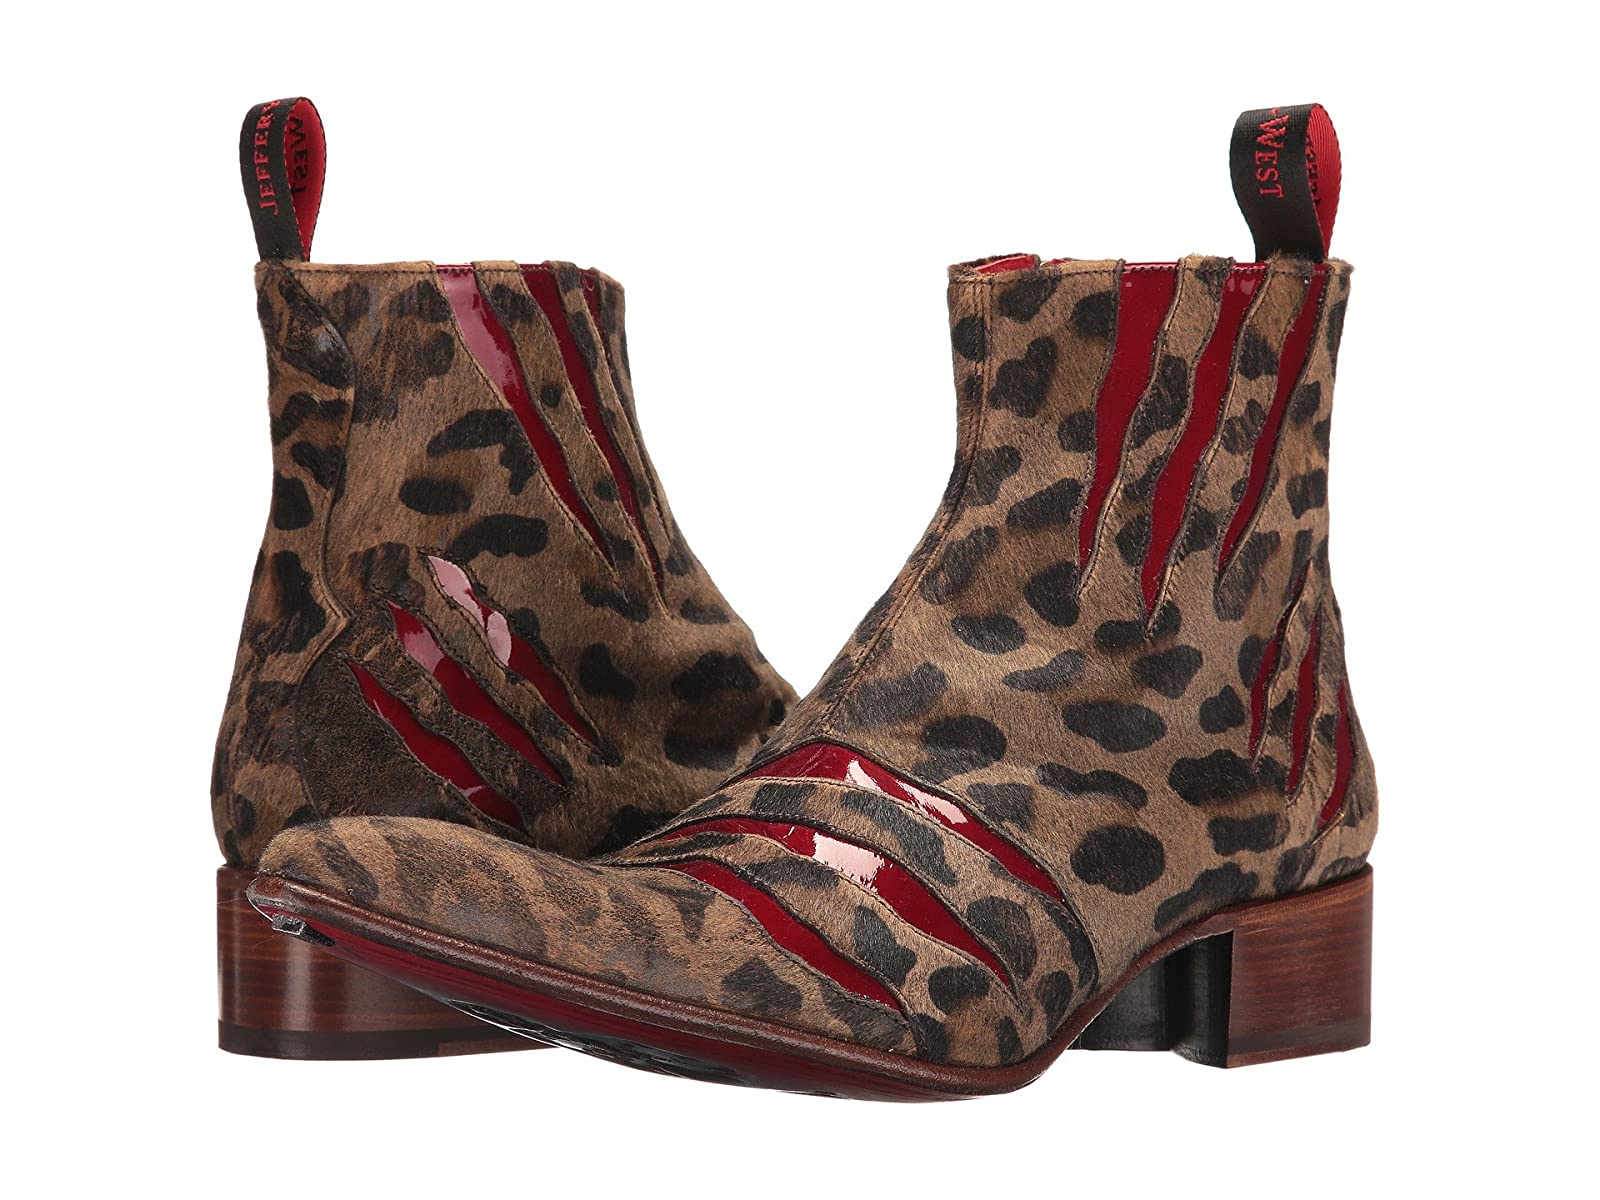 Jeffery-West WolverineAffordable and distinctive shoes